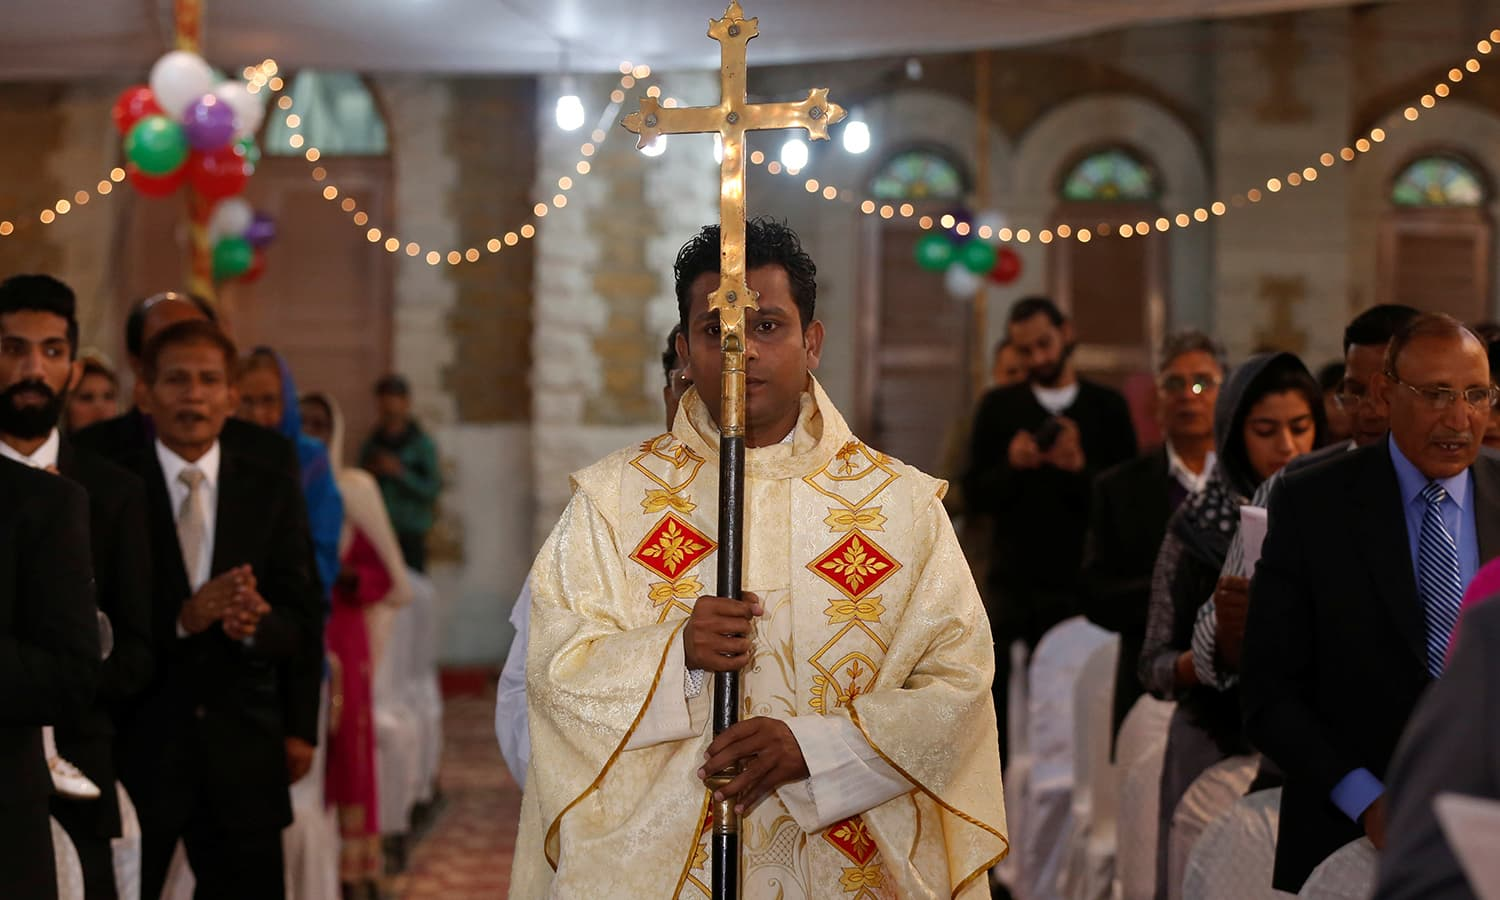 A member of church holds a cross as he walks past people pray during a ceremony on Christmas eve at Central Brooks Memorial Church in Karachi. ─Reuters